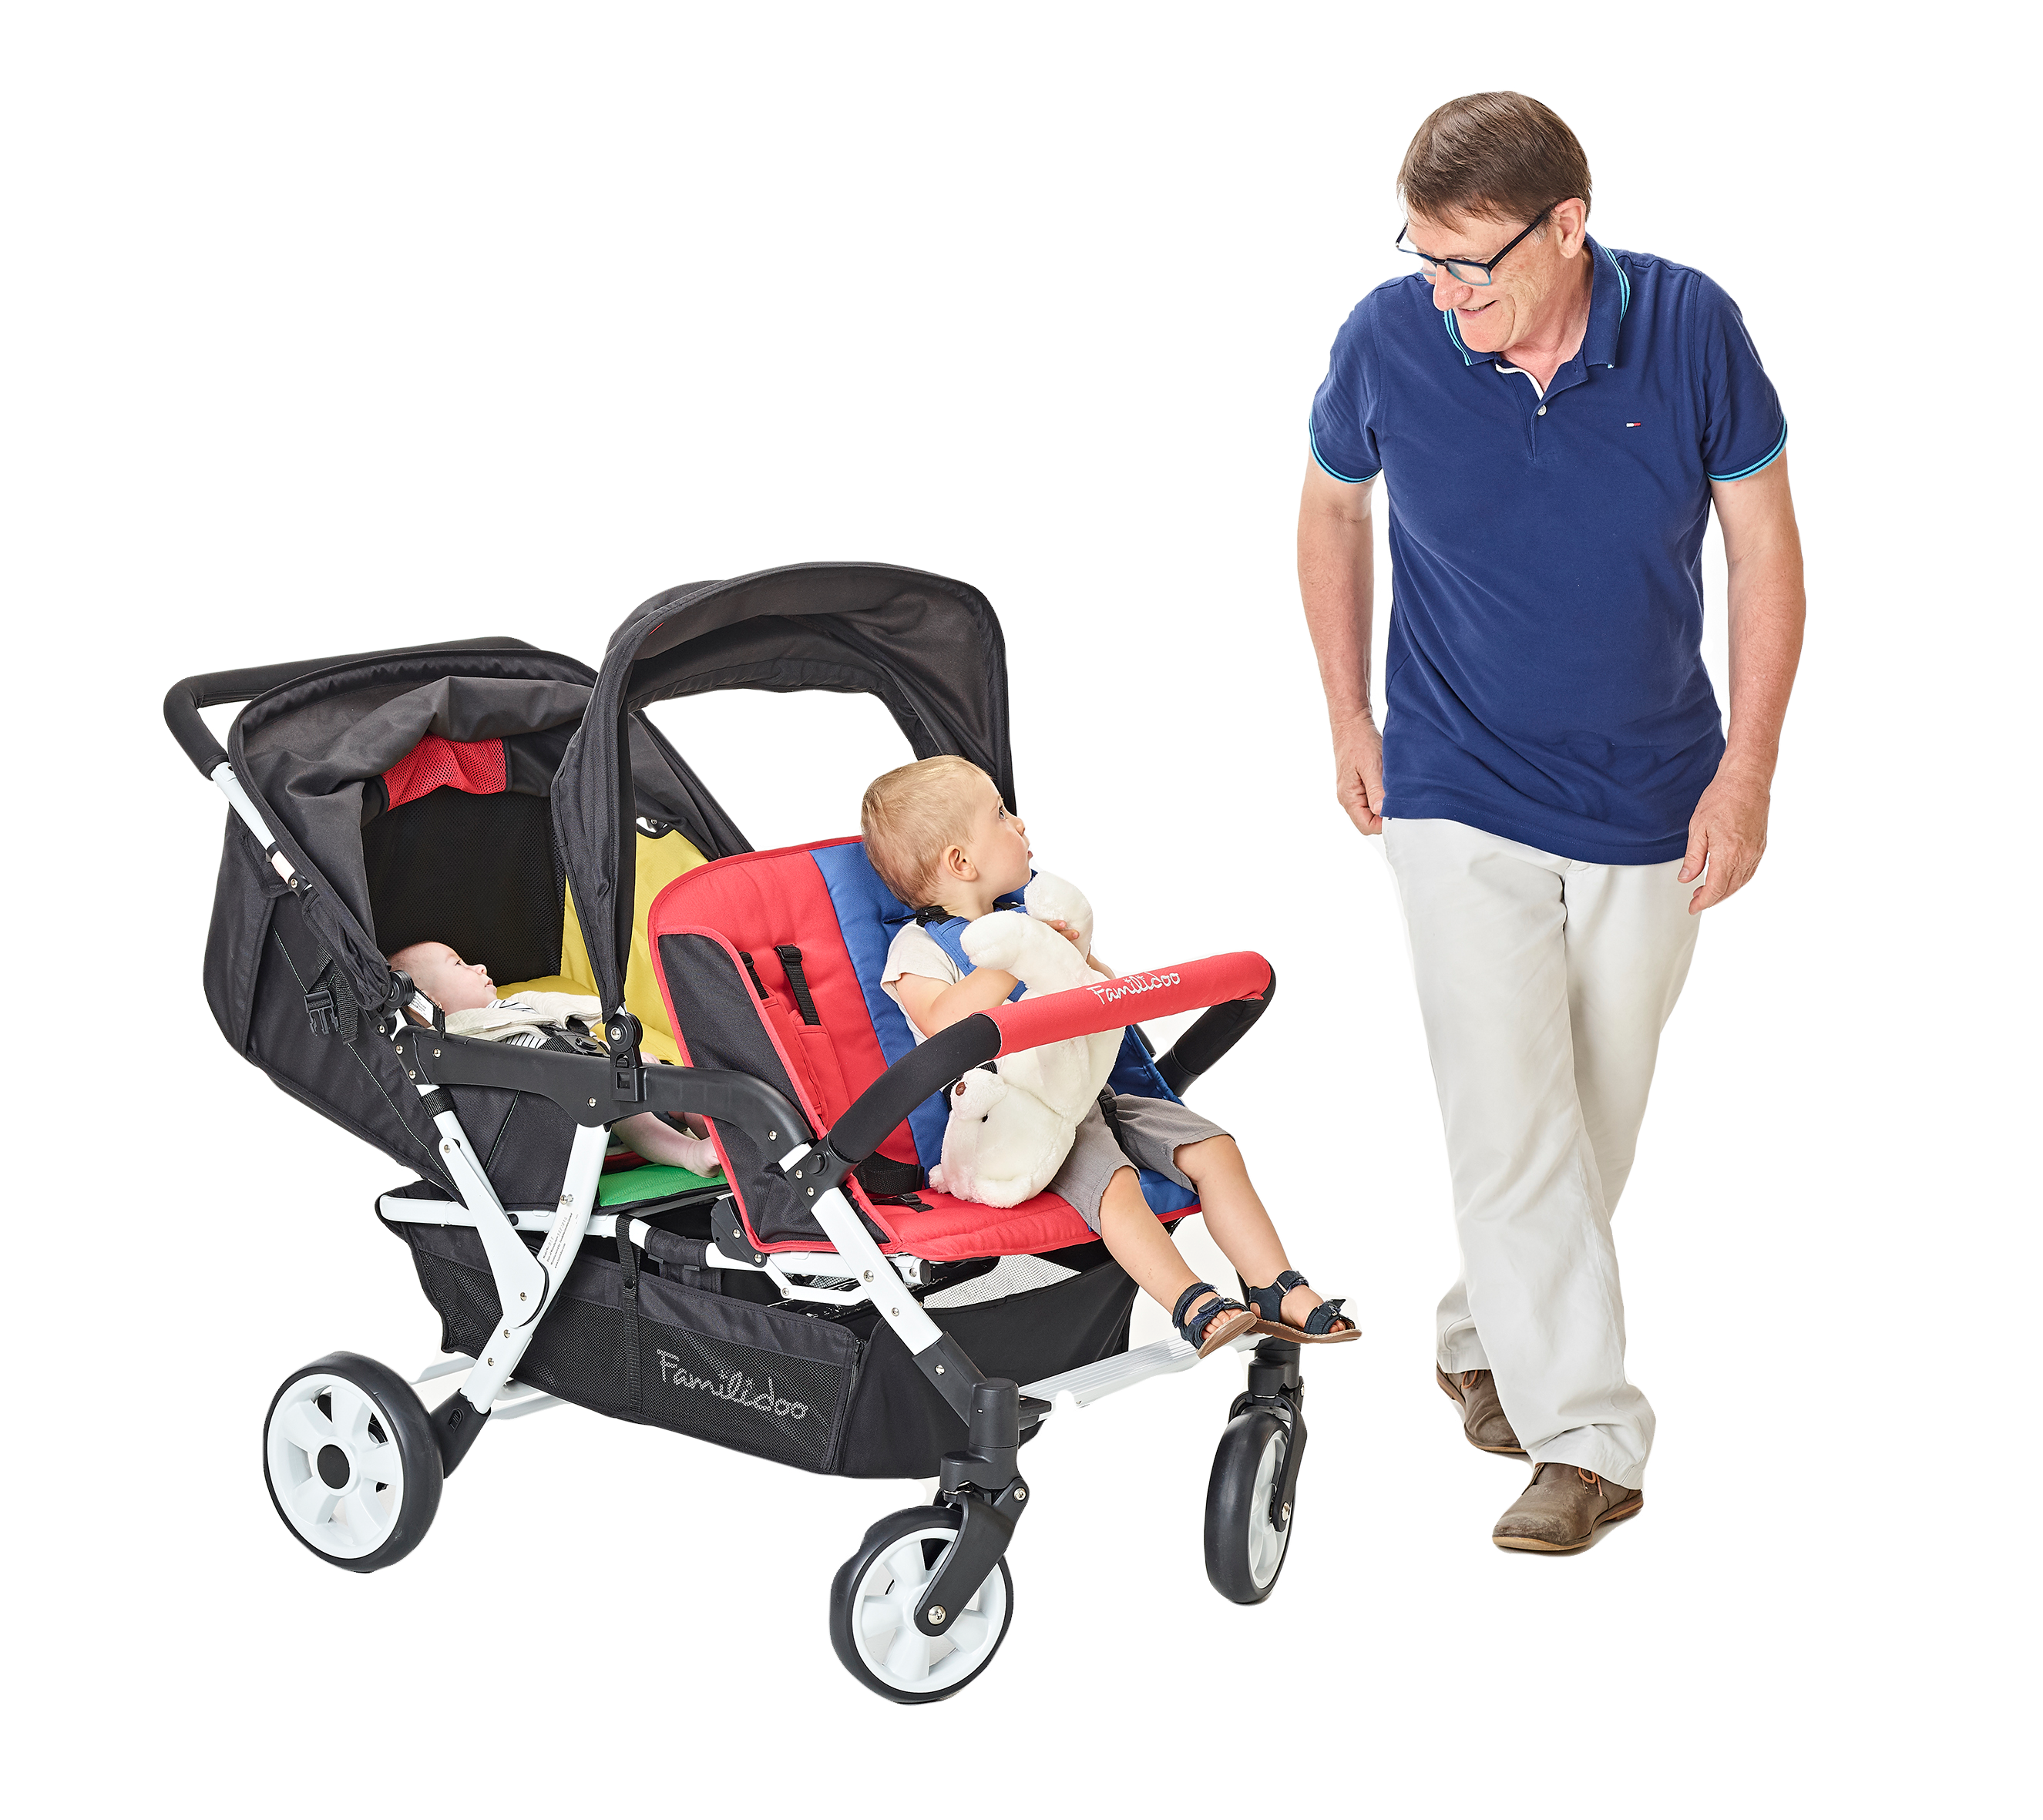 H04E-Familidoo-4 seater pushchair